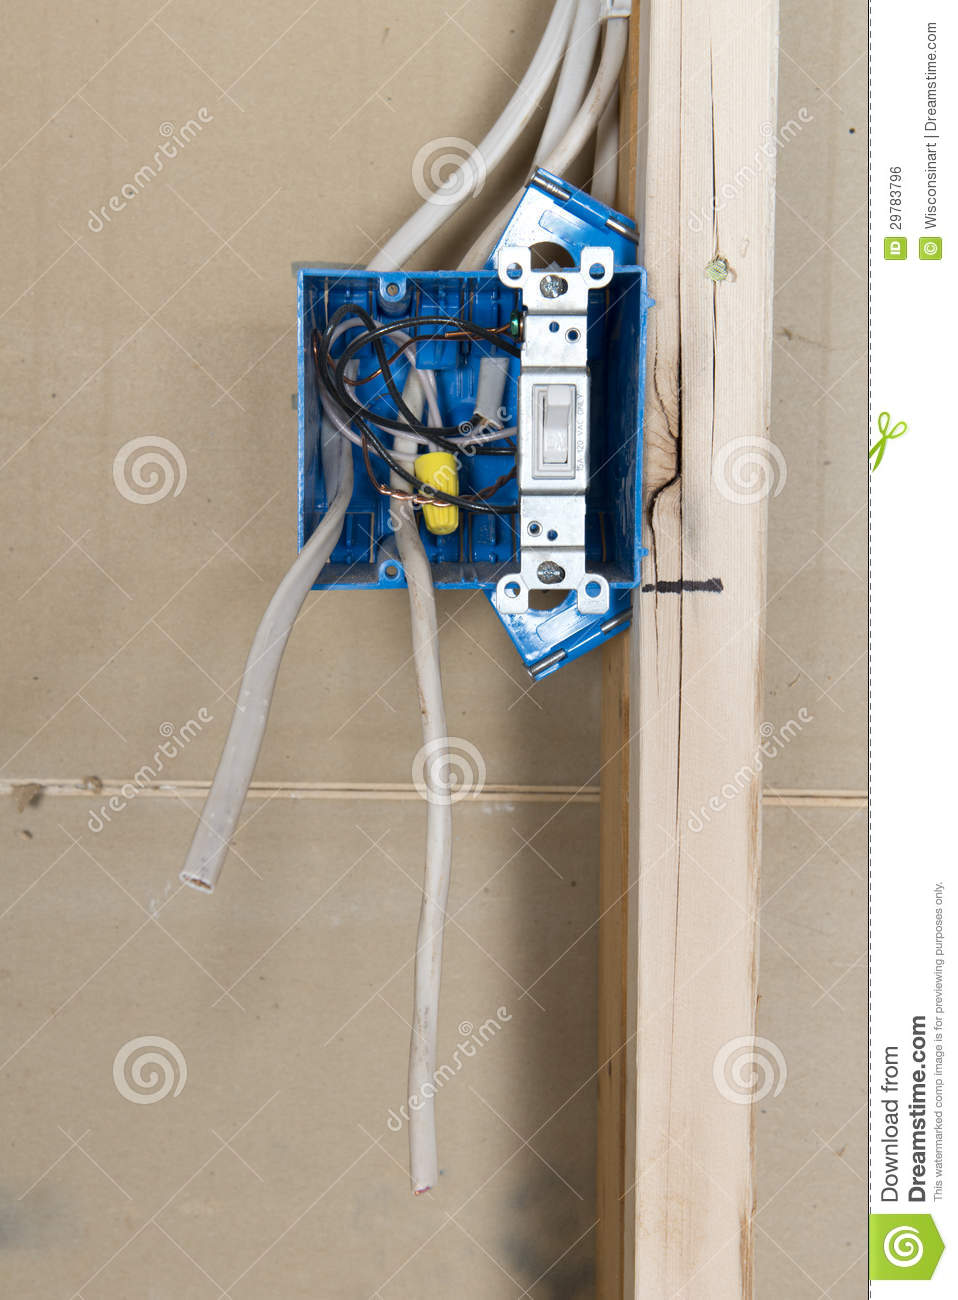 Electrical Outlet Electrical Expert Home Electrical Wiring